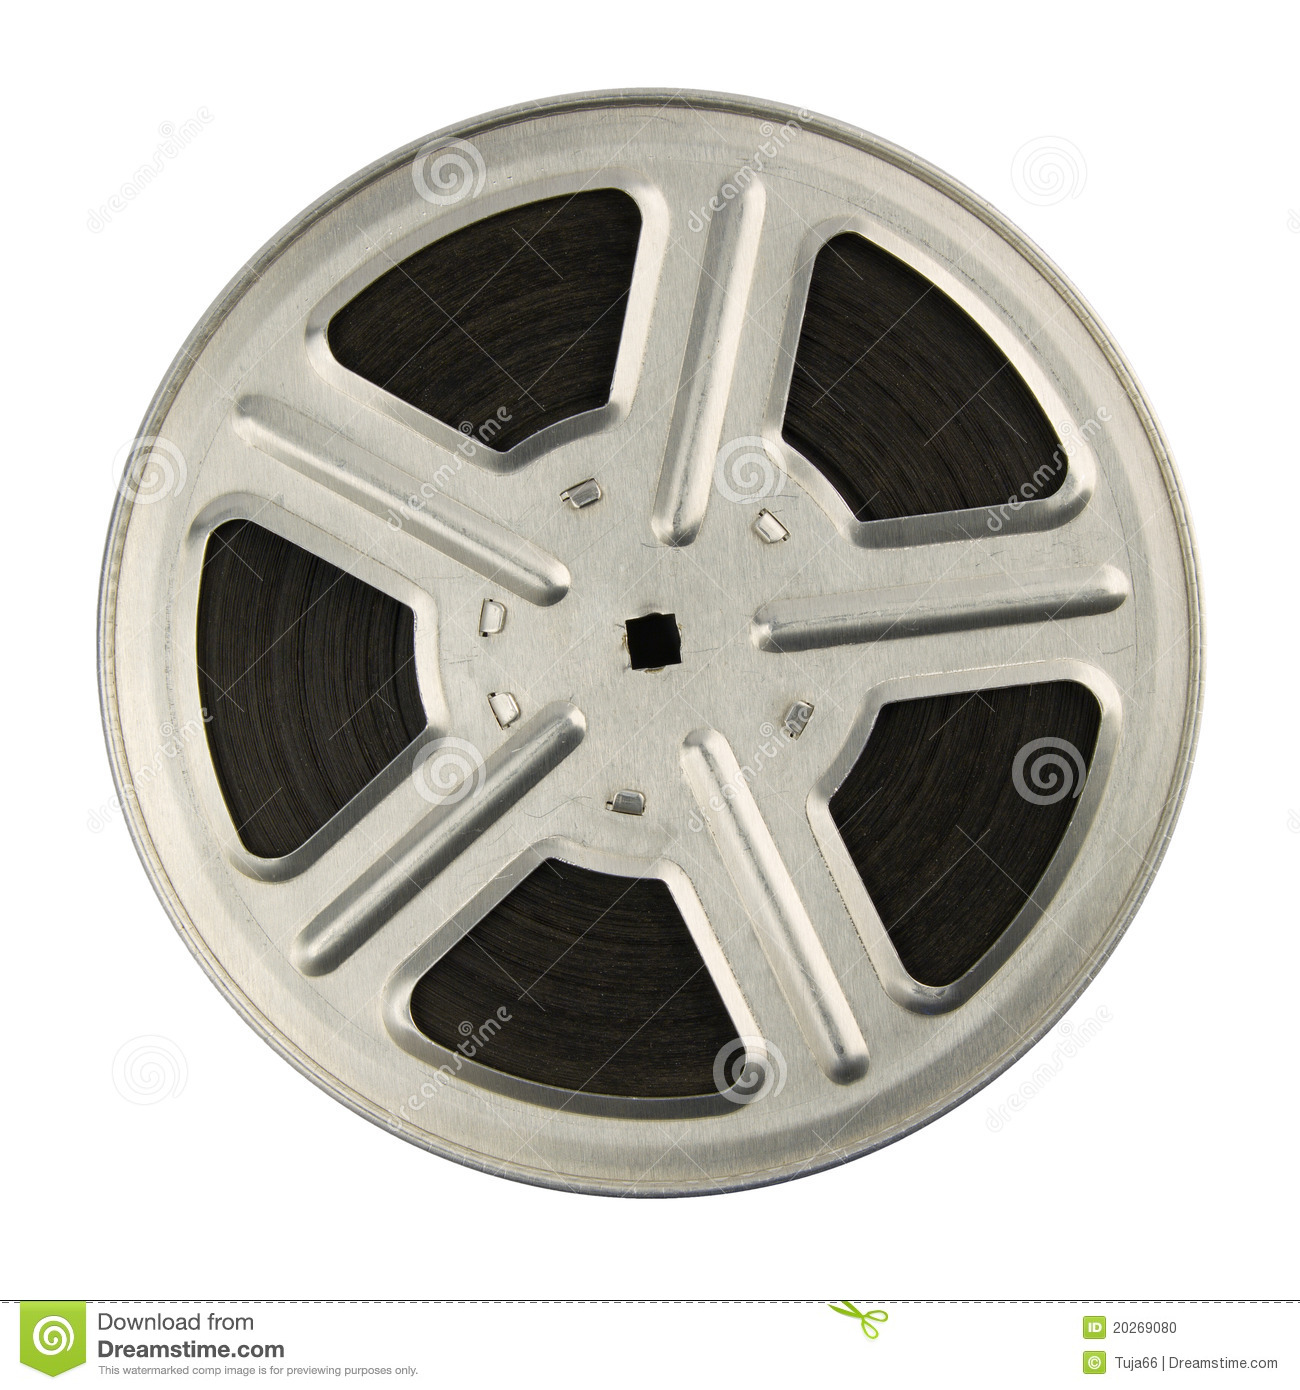 16 mm motion picture film reel, isolated on white background.